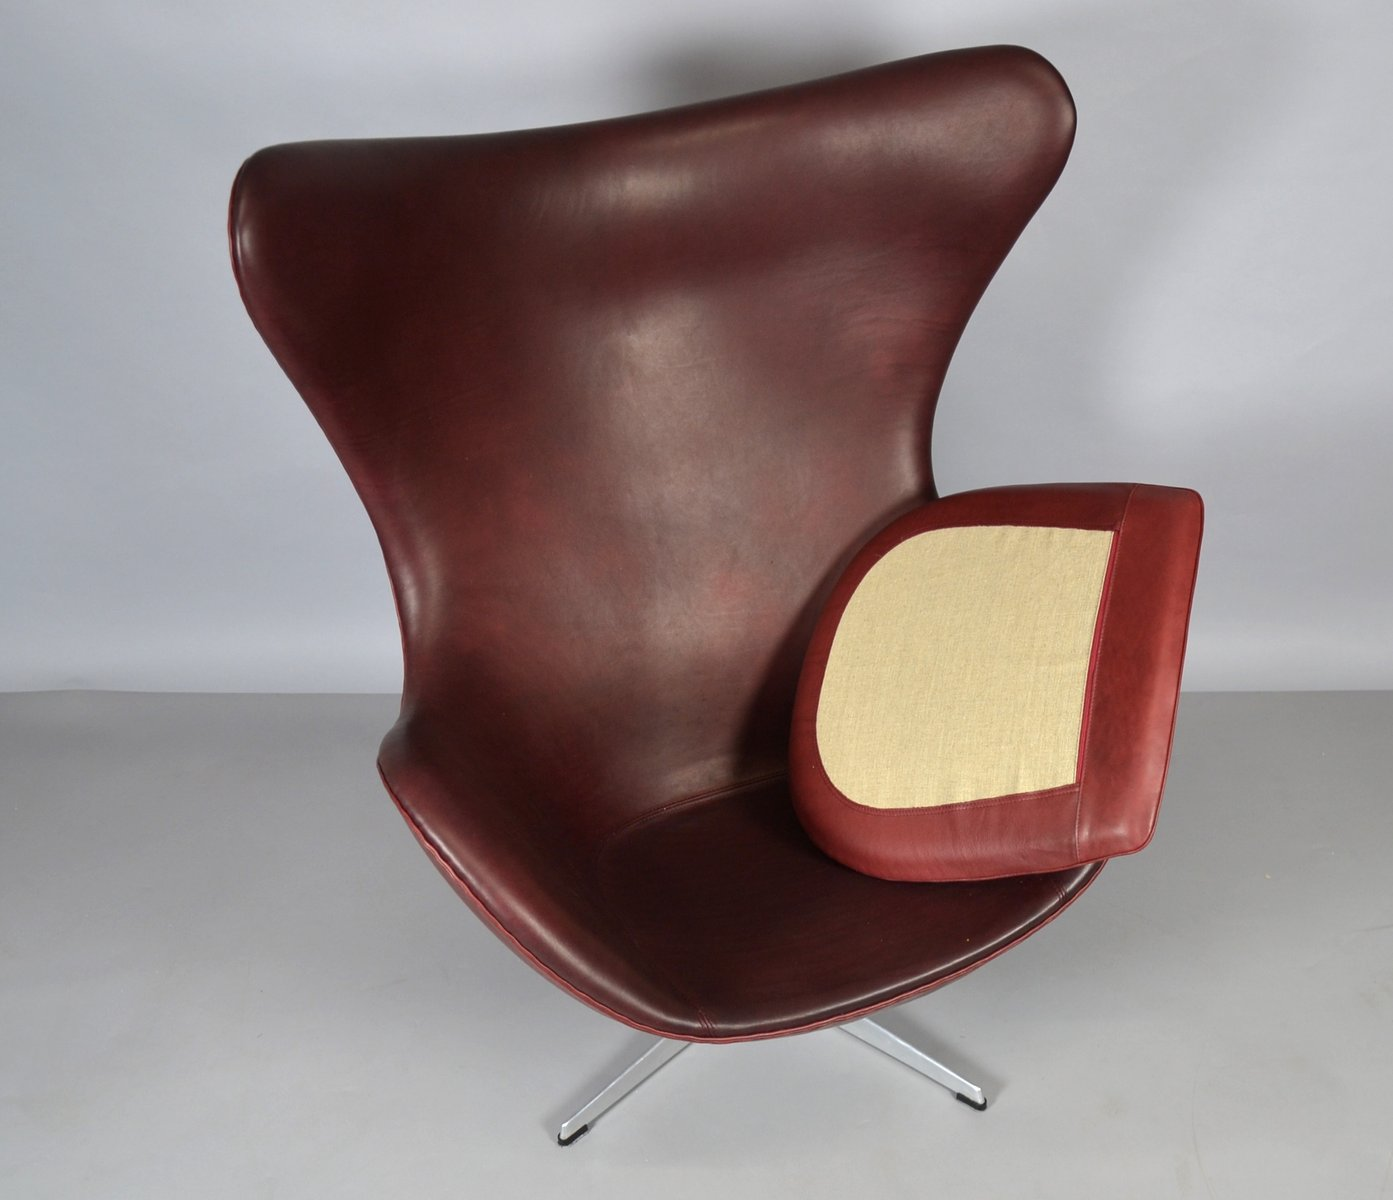 Hochwertig Affordable Egg Chair Aus Leder Von Arne Jacobsen Fr Fritz Hansen With Egg  Chair Leder With Egg Sessel.